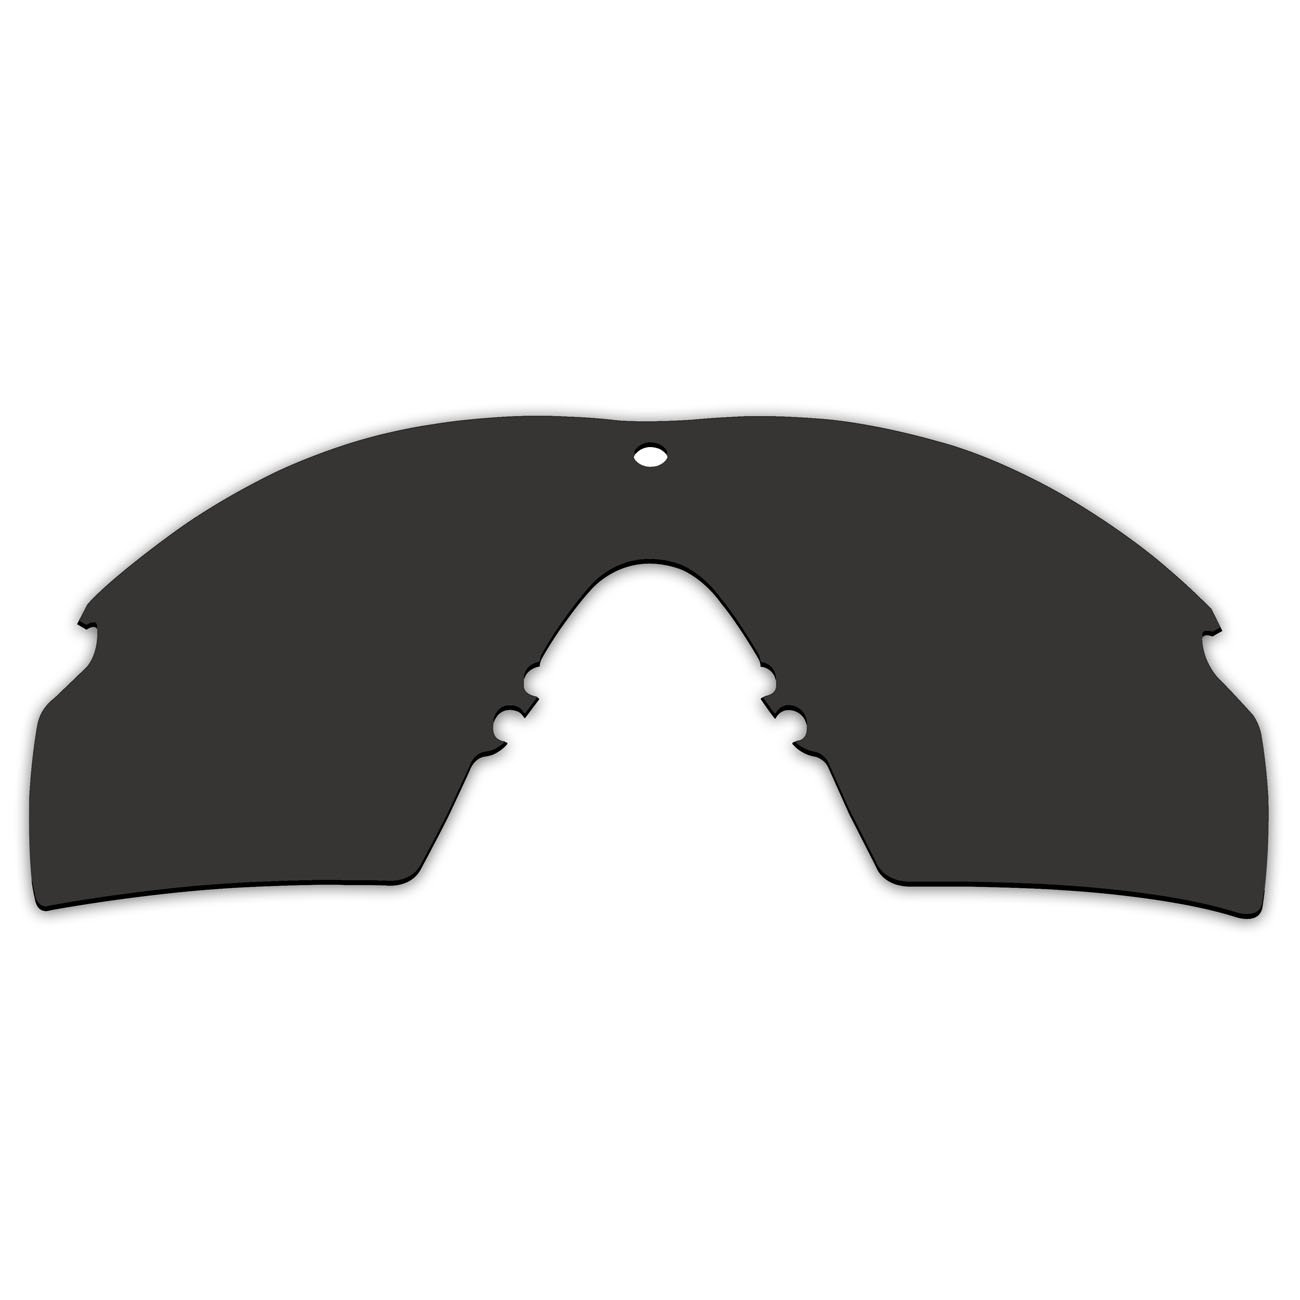 3d72dcc8e14 Get Quotations · ACOMPATIBLE Replacement Lenses for Oakley Industrial M  Frame 2.0 (2016 Year) Sunglasses OO9213